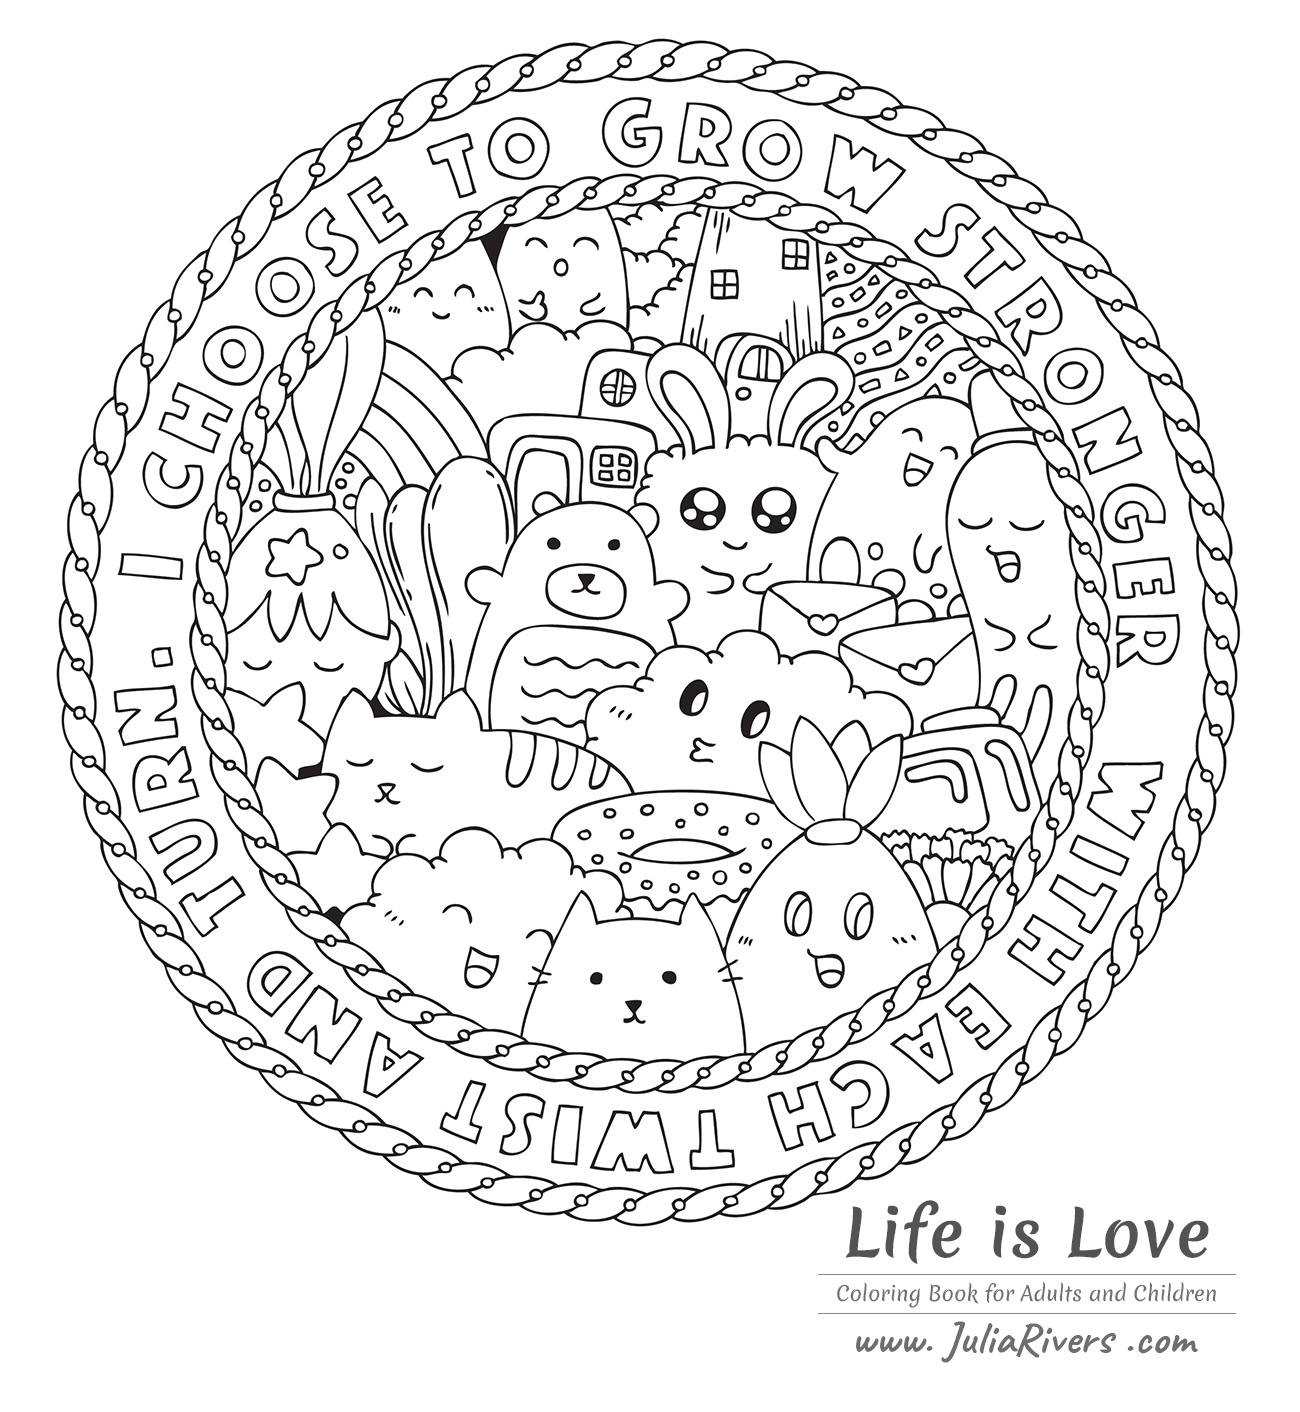 Life Is Love Beautiful Coloring Page Full Of Funny Kawaii Characters Cats Bears Rabbits And Even A Donut